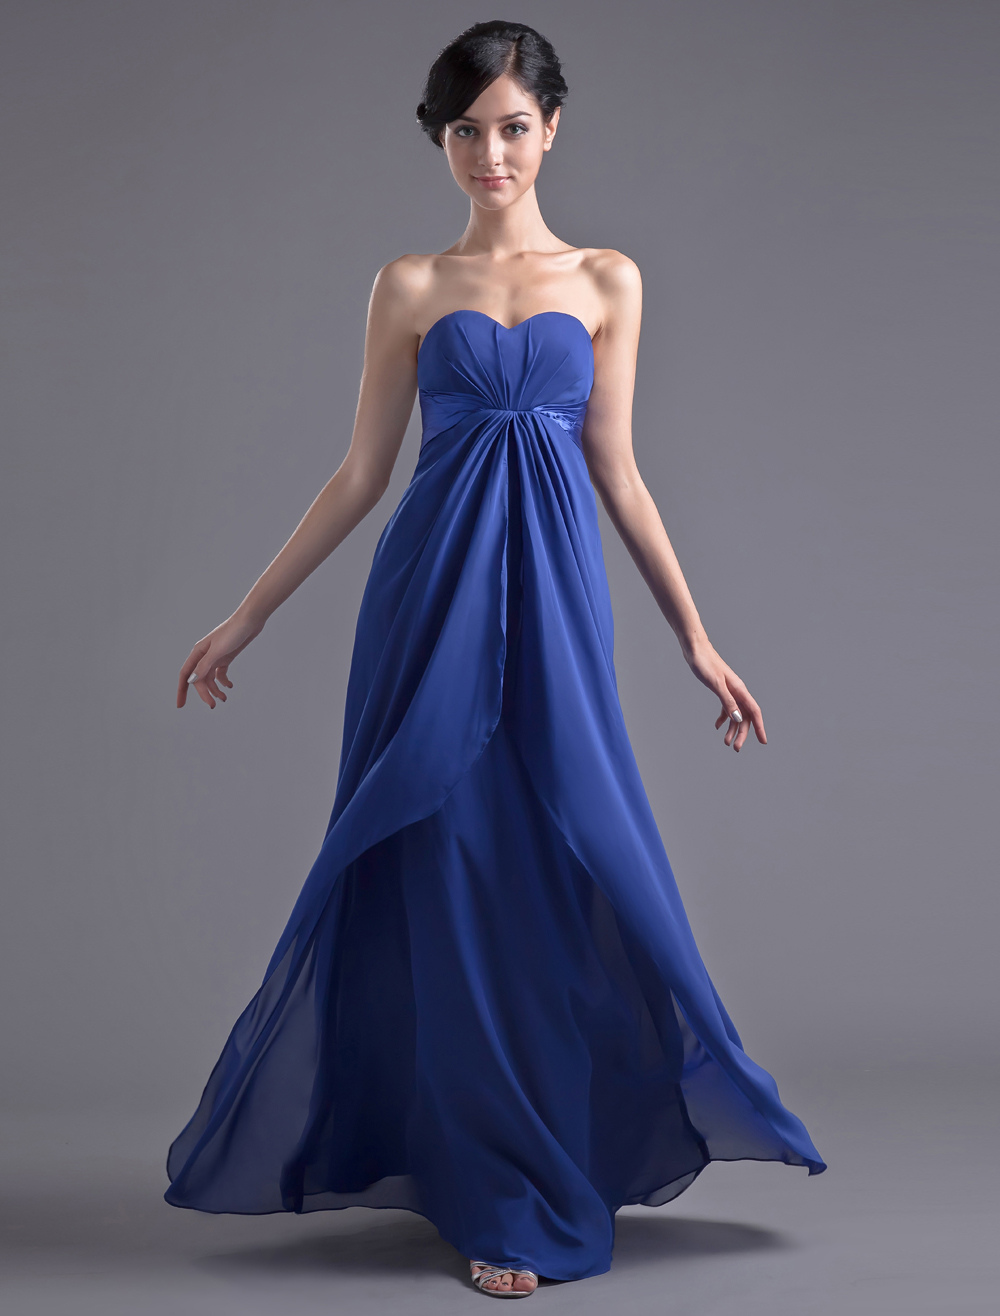 Empire Waist Royal Blue Chiffon Sweetheart Neck Fashion Bridesmaid Dress